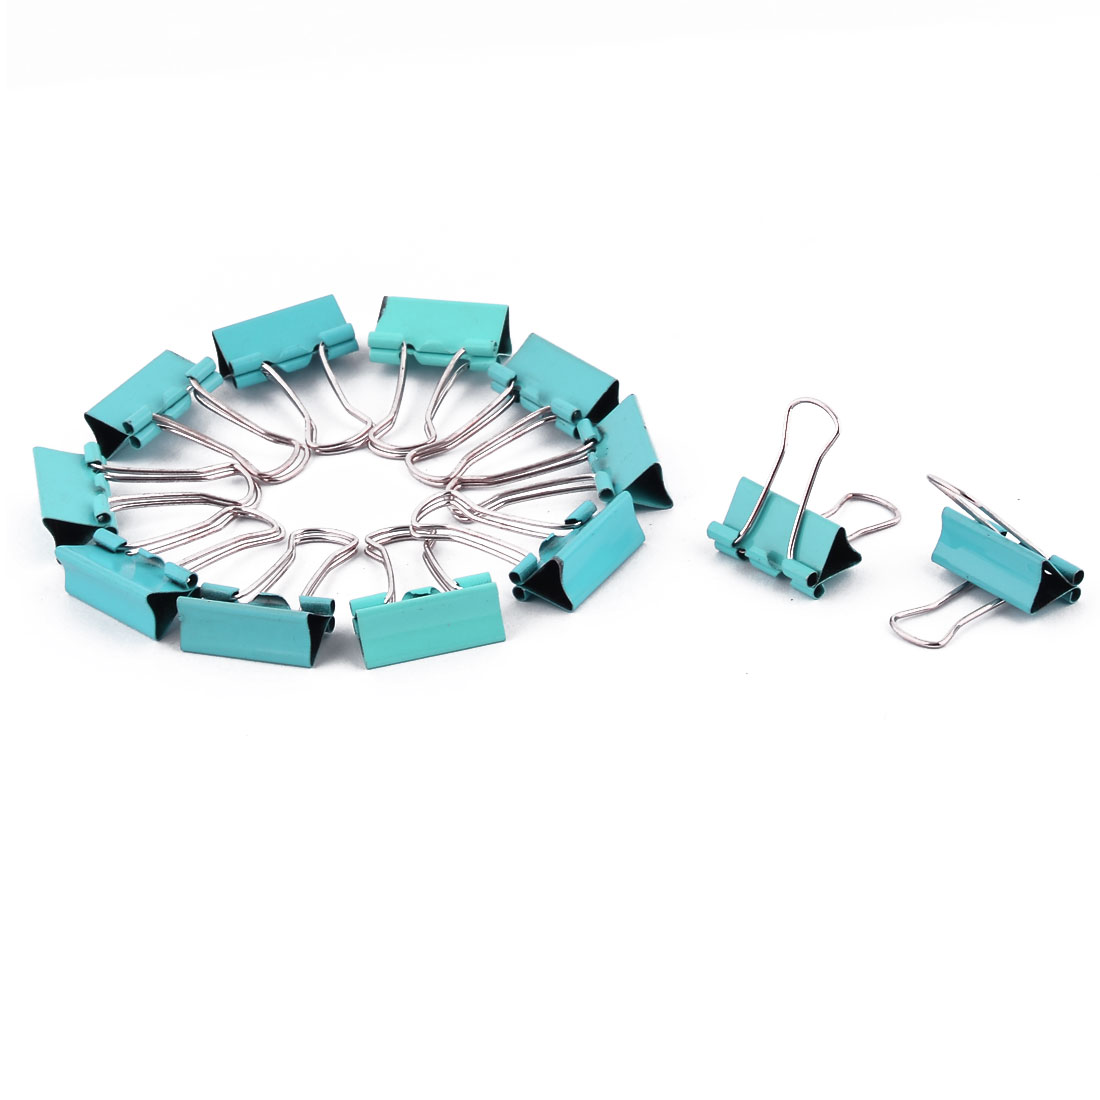 Office Metal Ticket File Paper Work Binder Clips Clamps Sky Blue 12 PCS